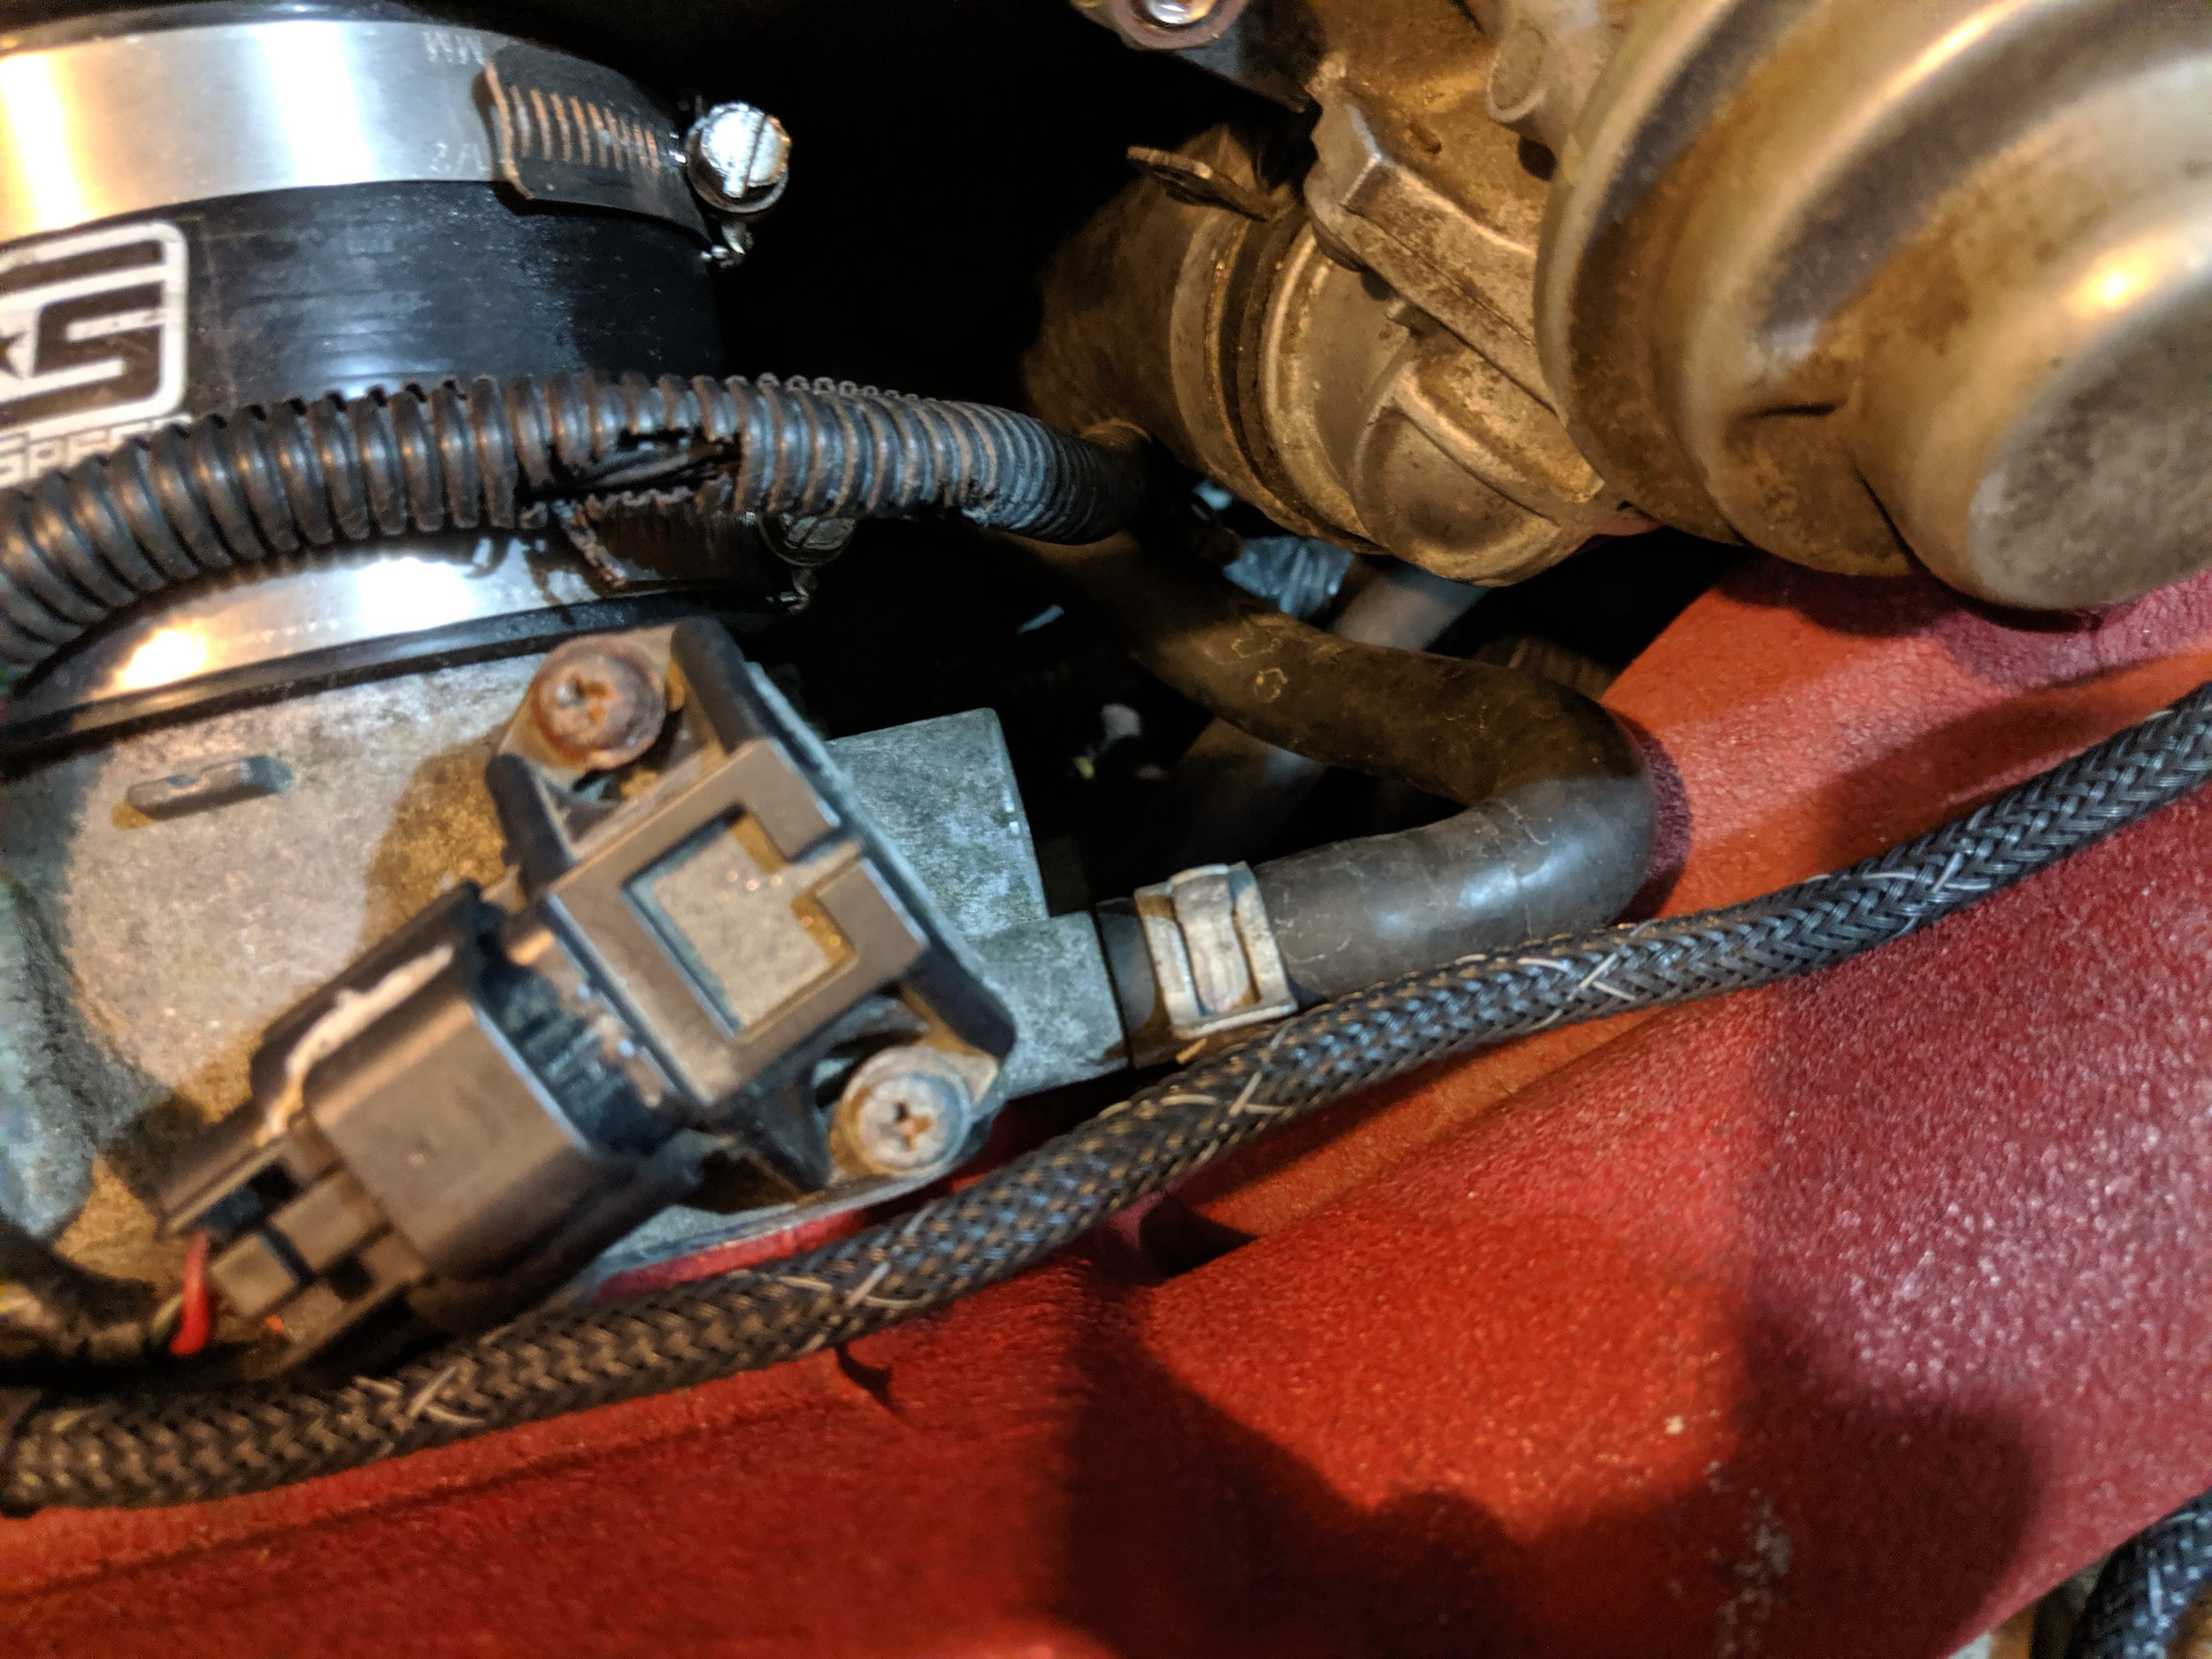 This is the upper coolant line and not seen but right below it. The other line attaches, remove them both.